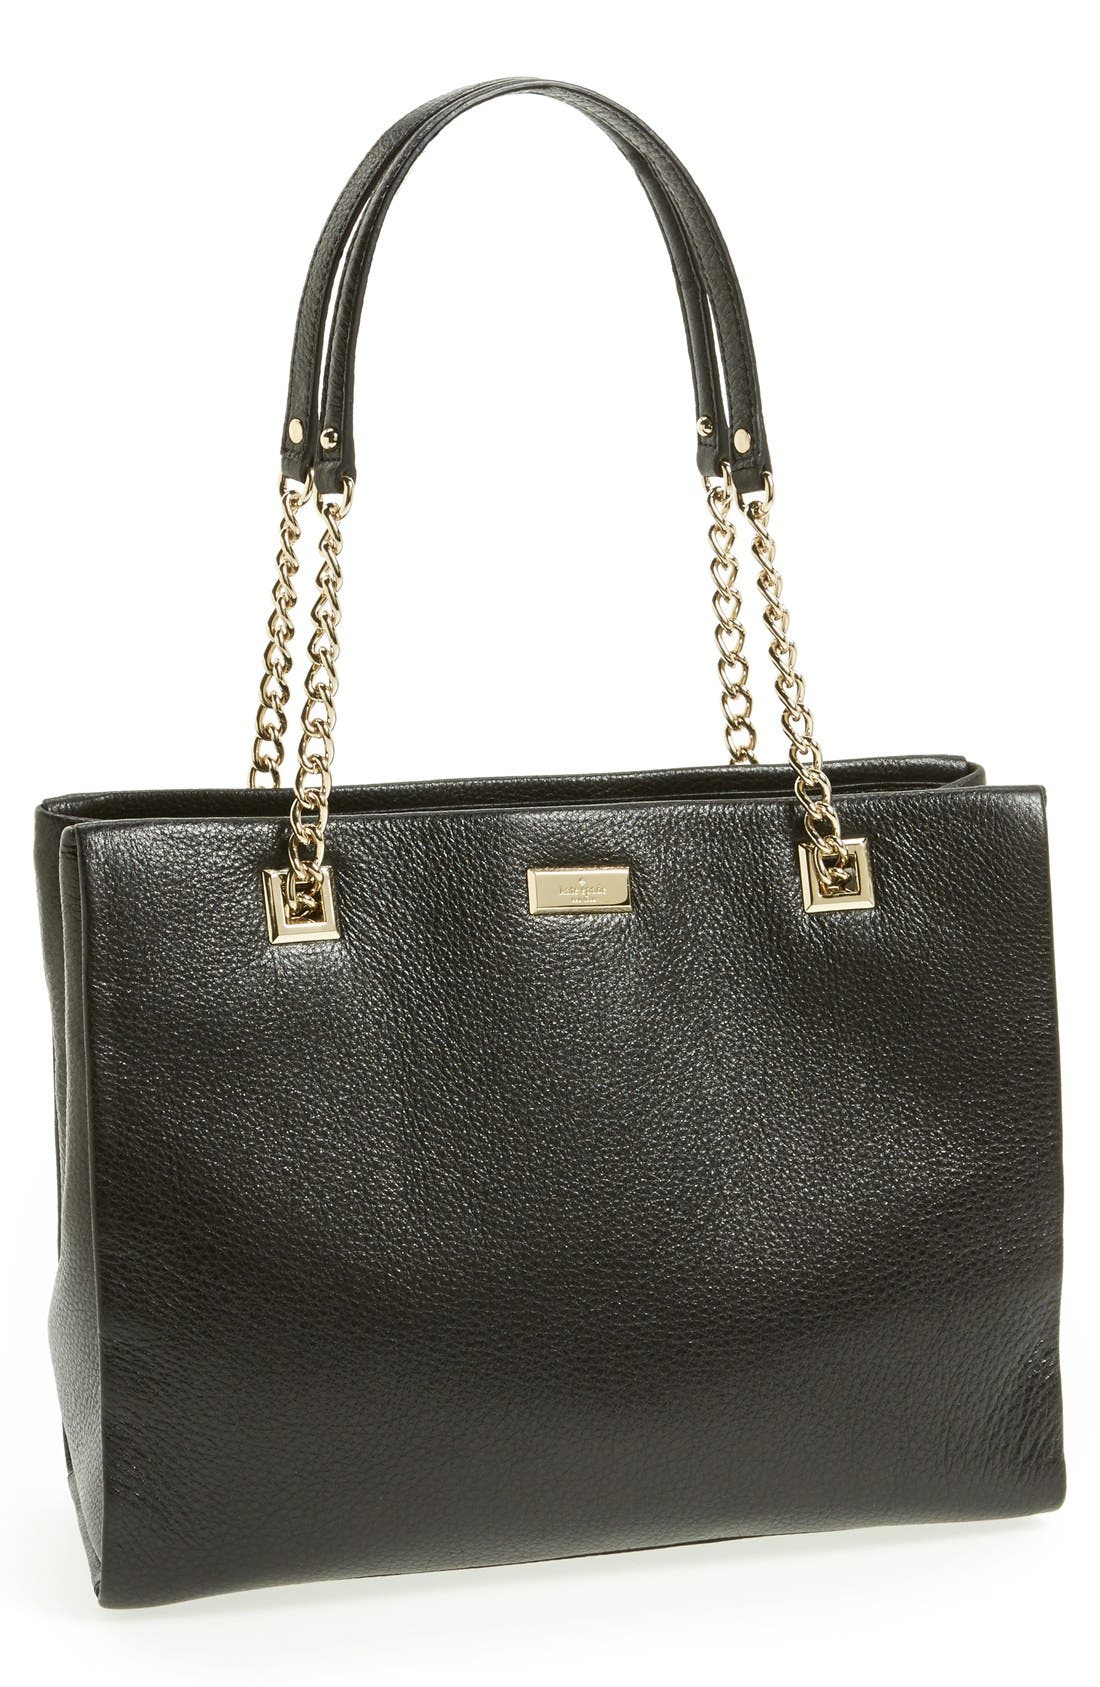 Main Image - kate spade new york 'sedgewick lane - large phoebe' shoulder bag